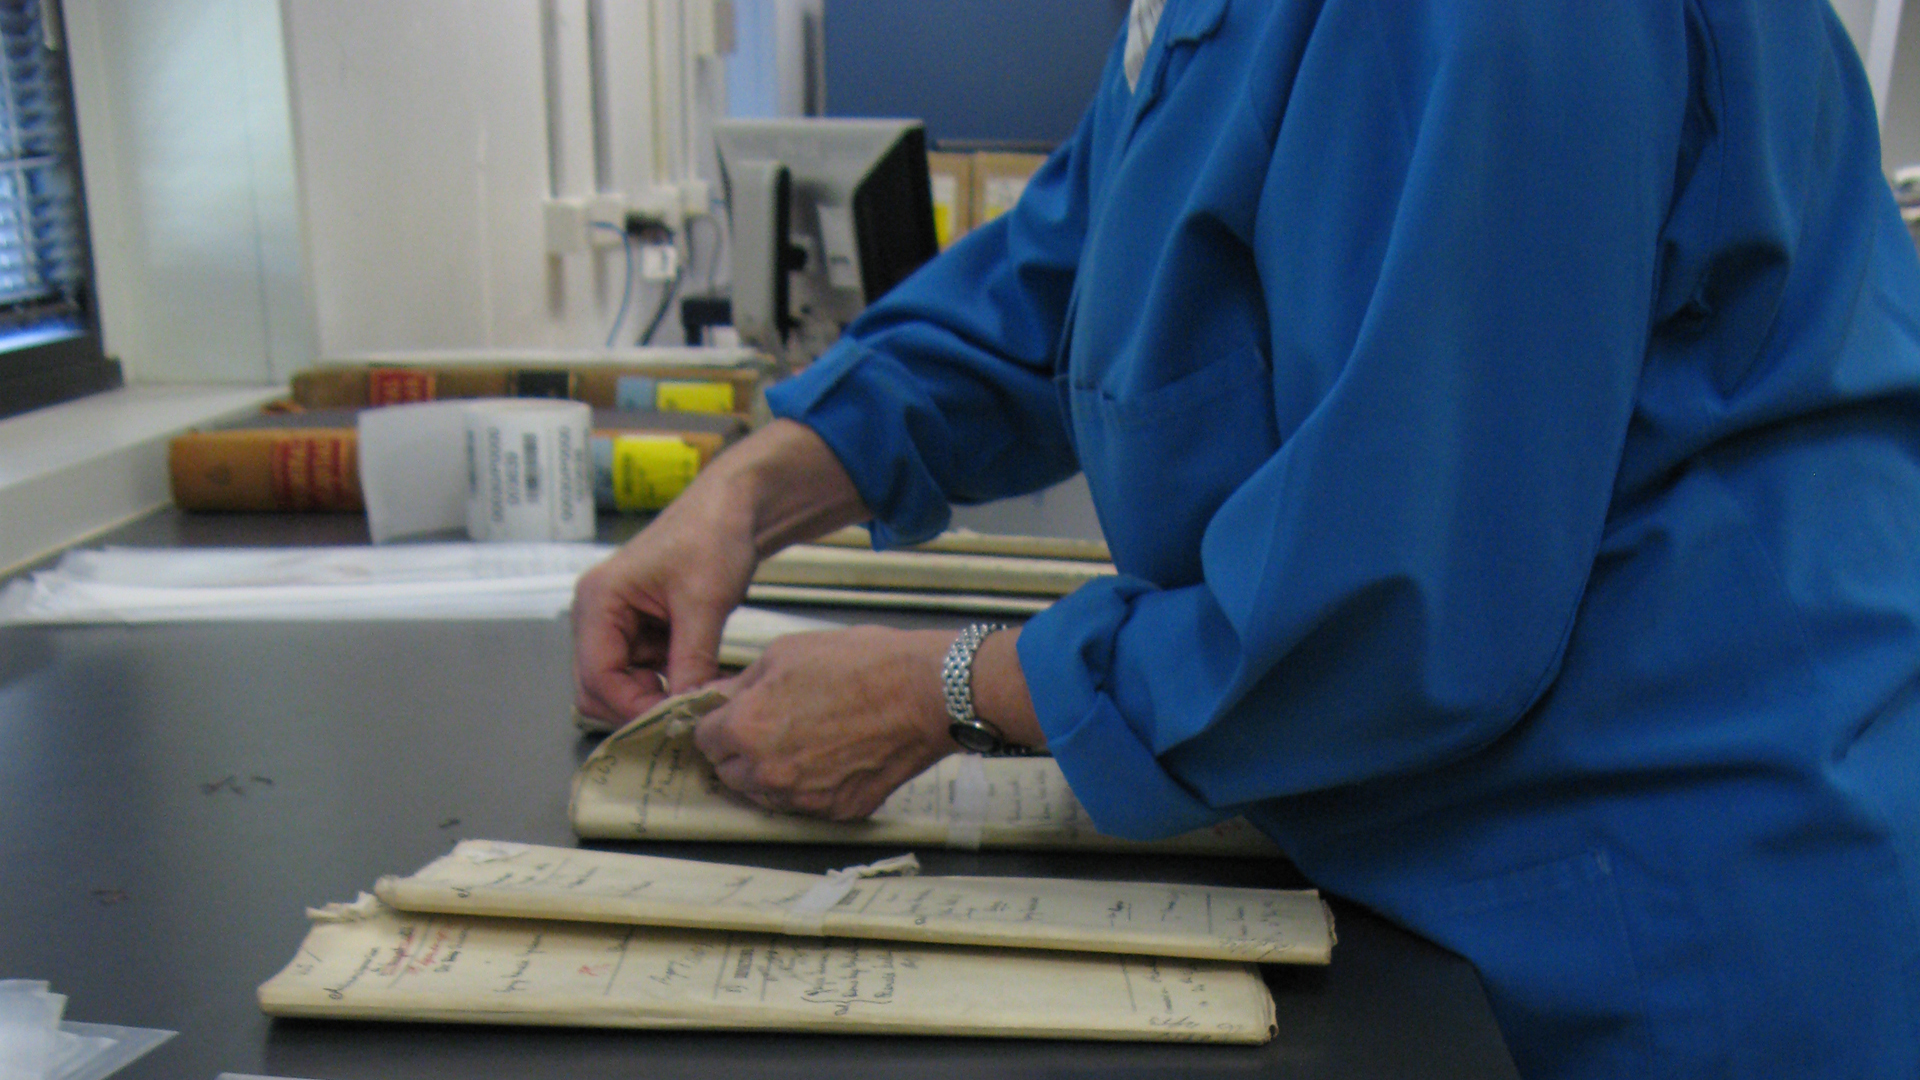 Image of archivist handling records